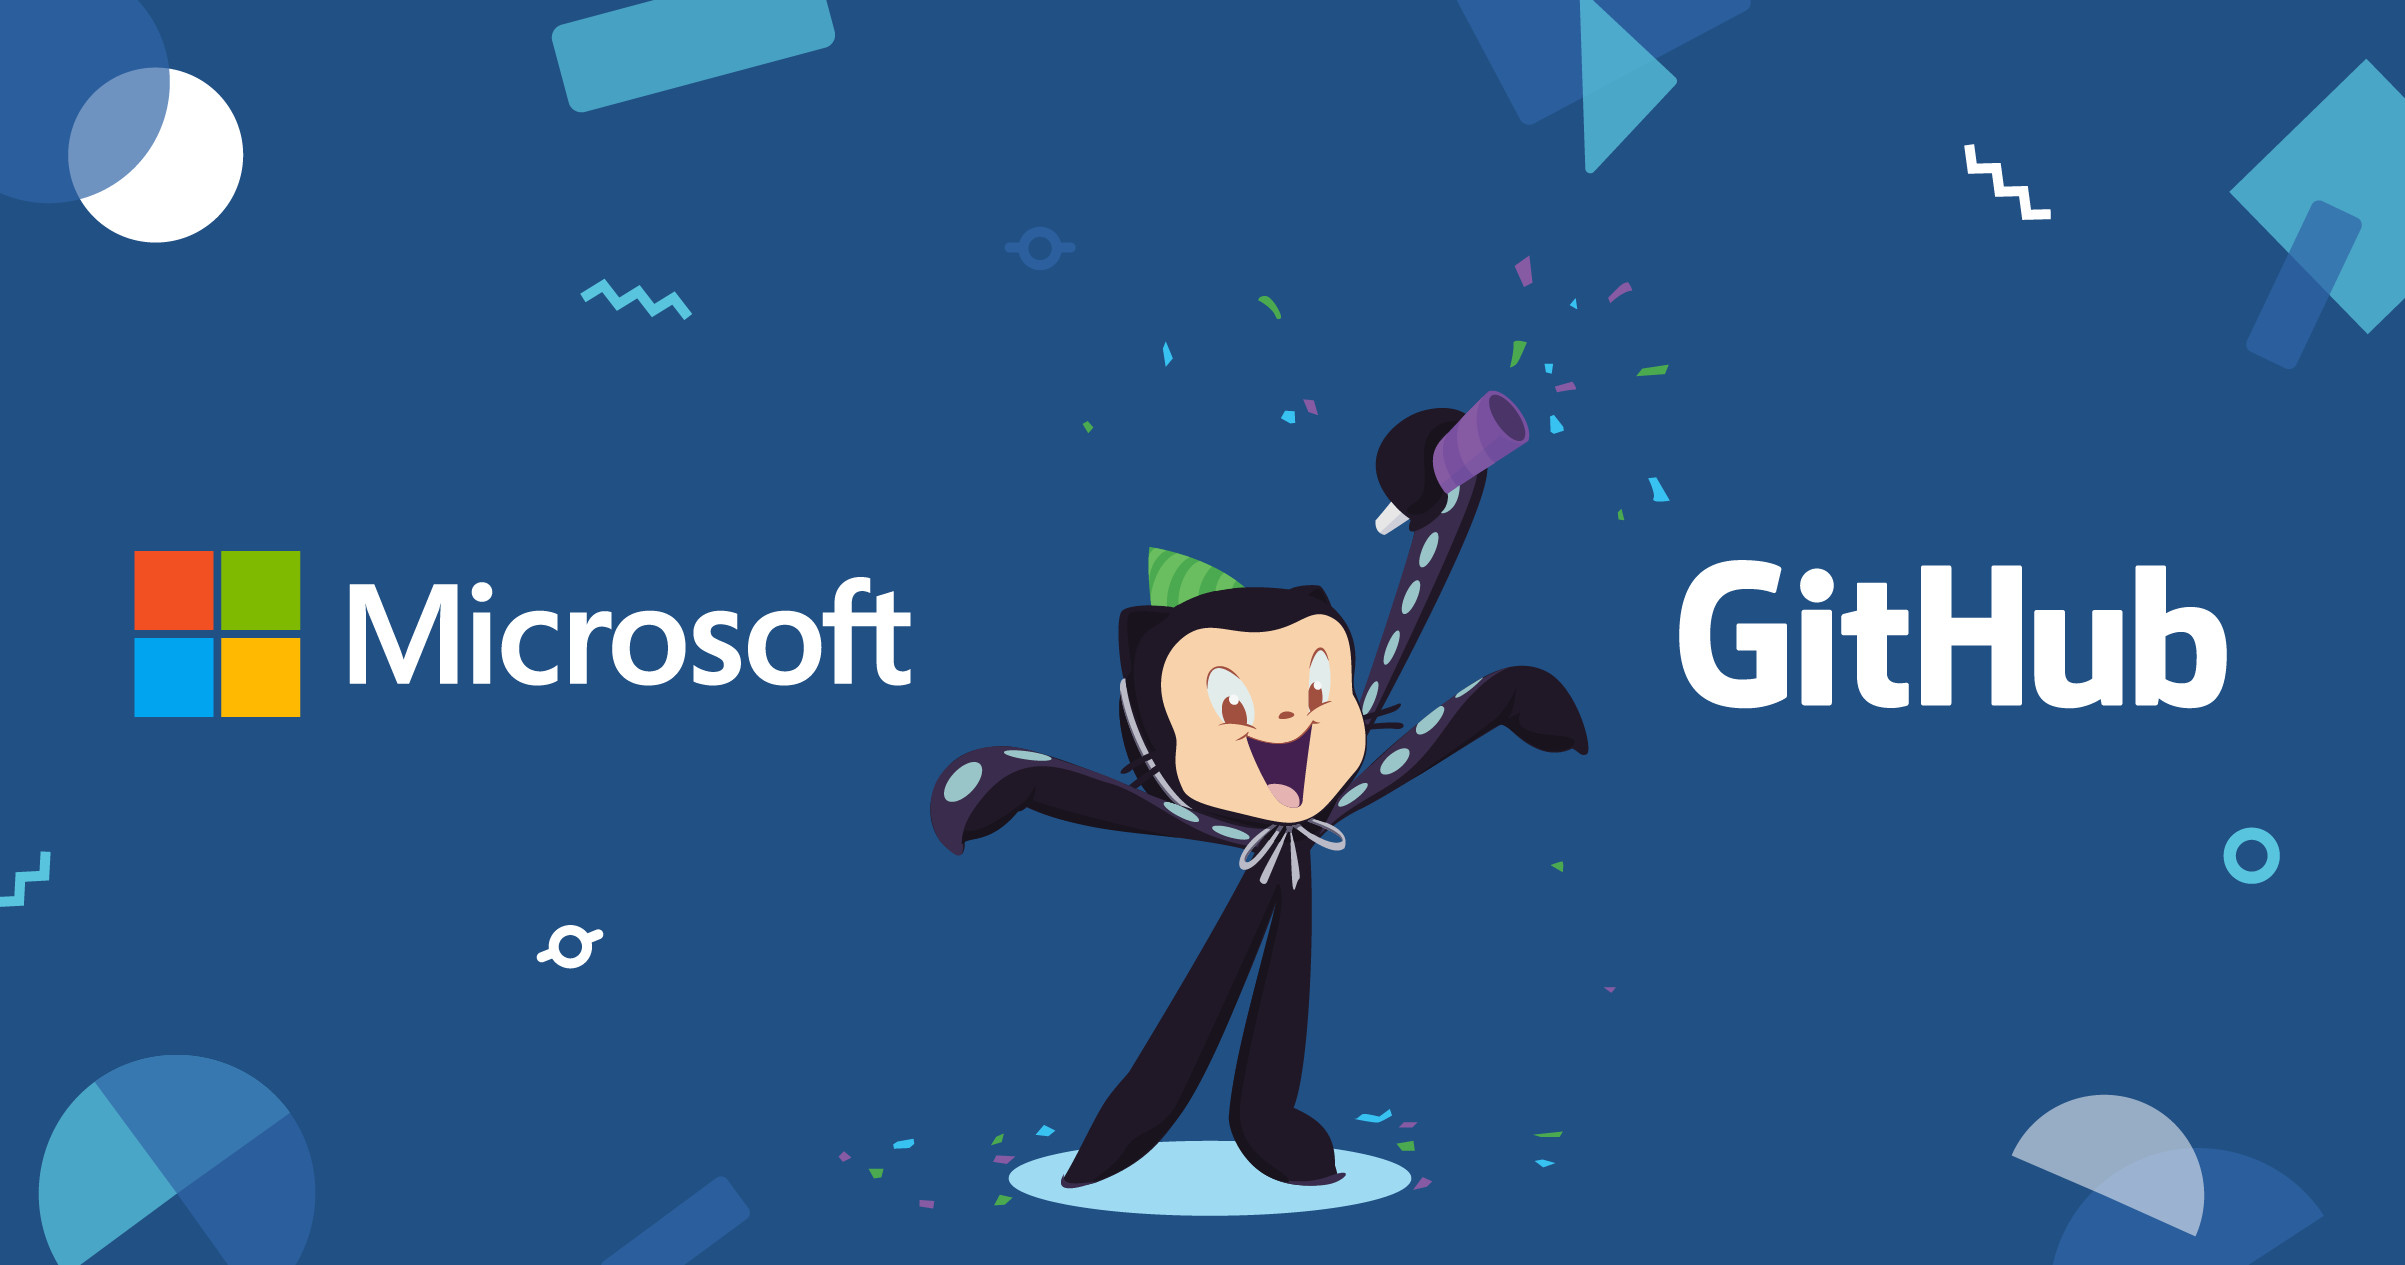 Microsoft's acquisition of open-source icon GitHub is reportedly a done deal